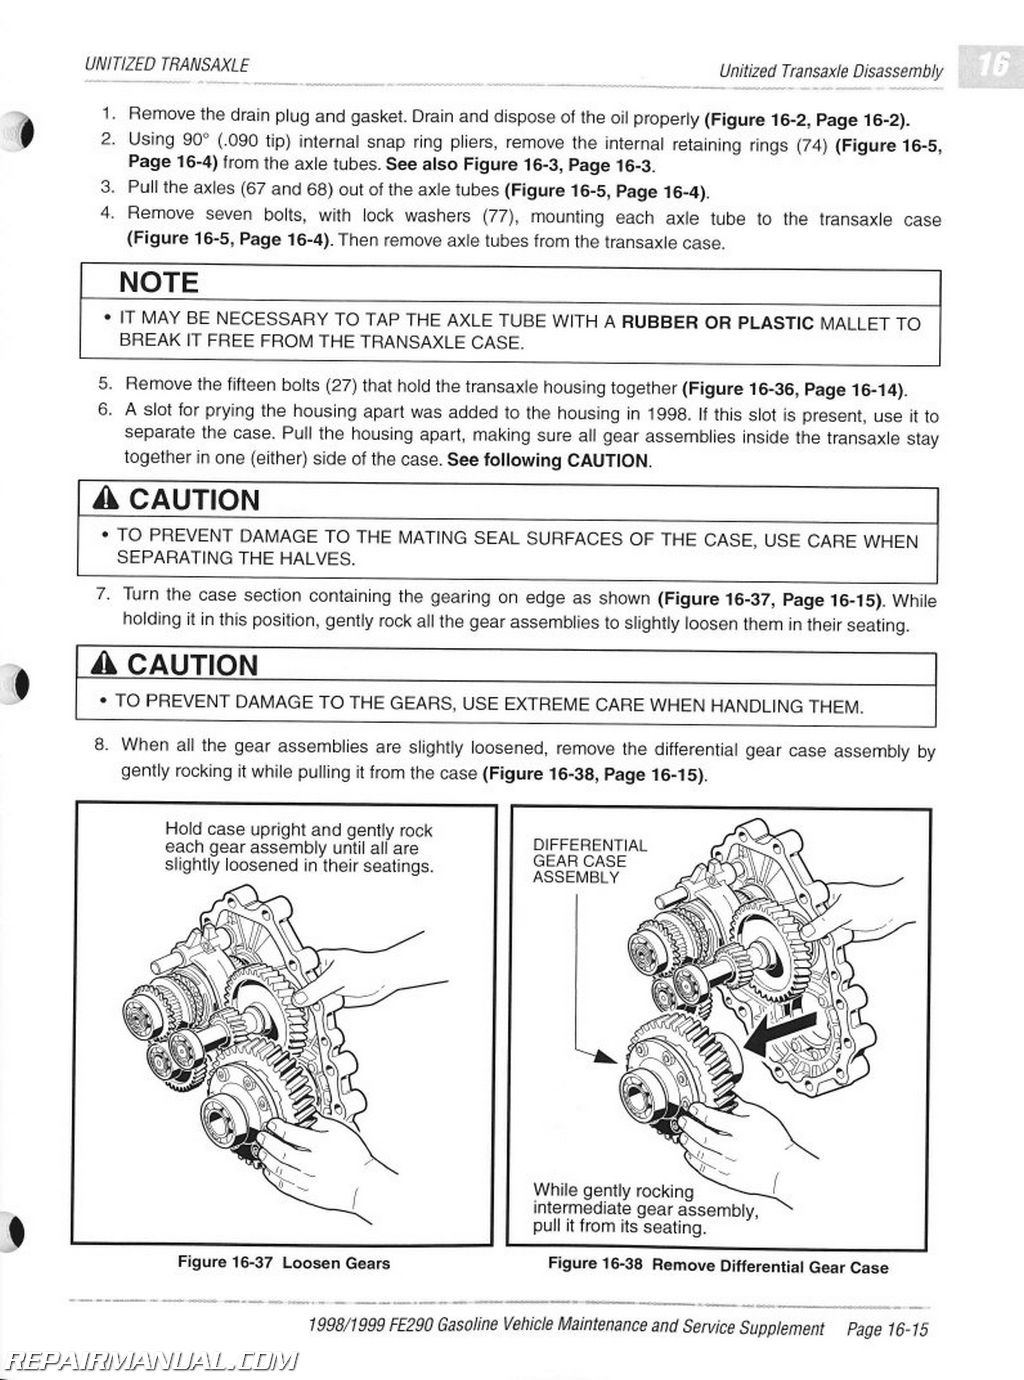 Club Car Maintenance Manual Free One Word Quickstart Guide Book 1999 48v Wiring Diagram 1998 Fe290 And Service Supplement Used Rh Repairmanual Com Schedule